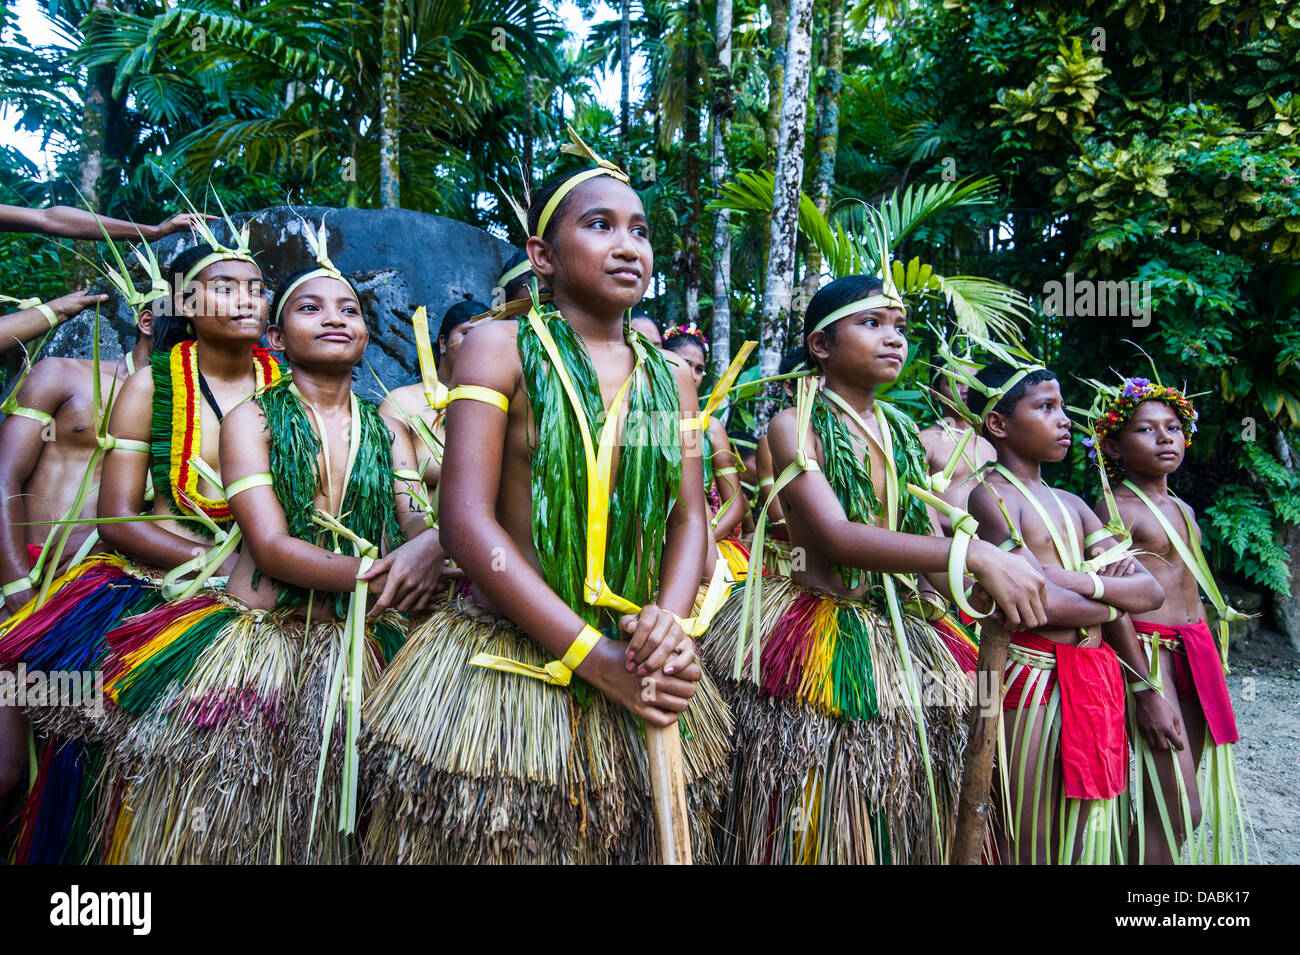 Traditionally dressed islanders posing for the camera, Island of Yap, Federated States of Micronesia, Caroline Islands, - Stock Image